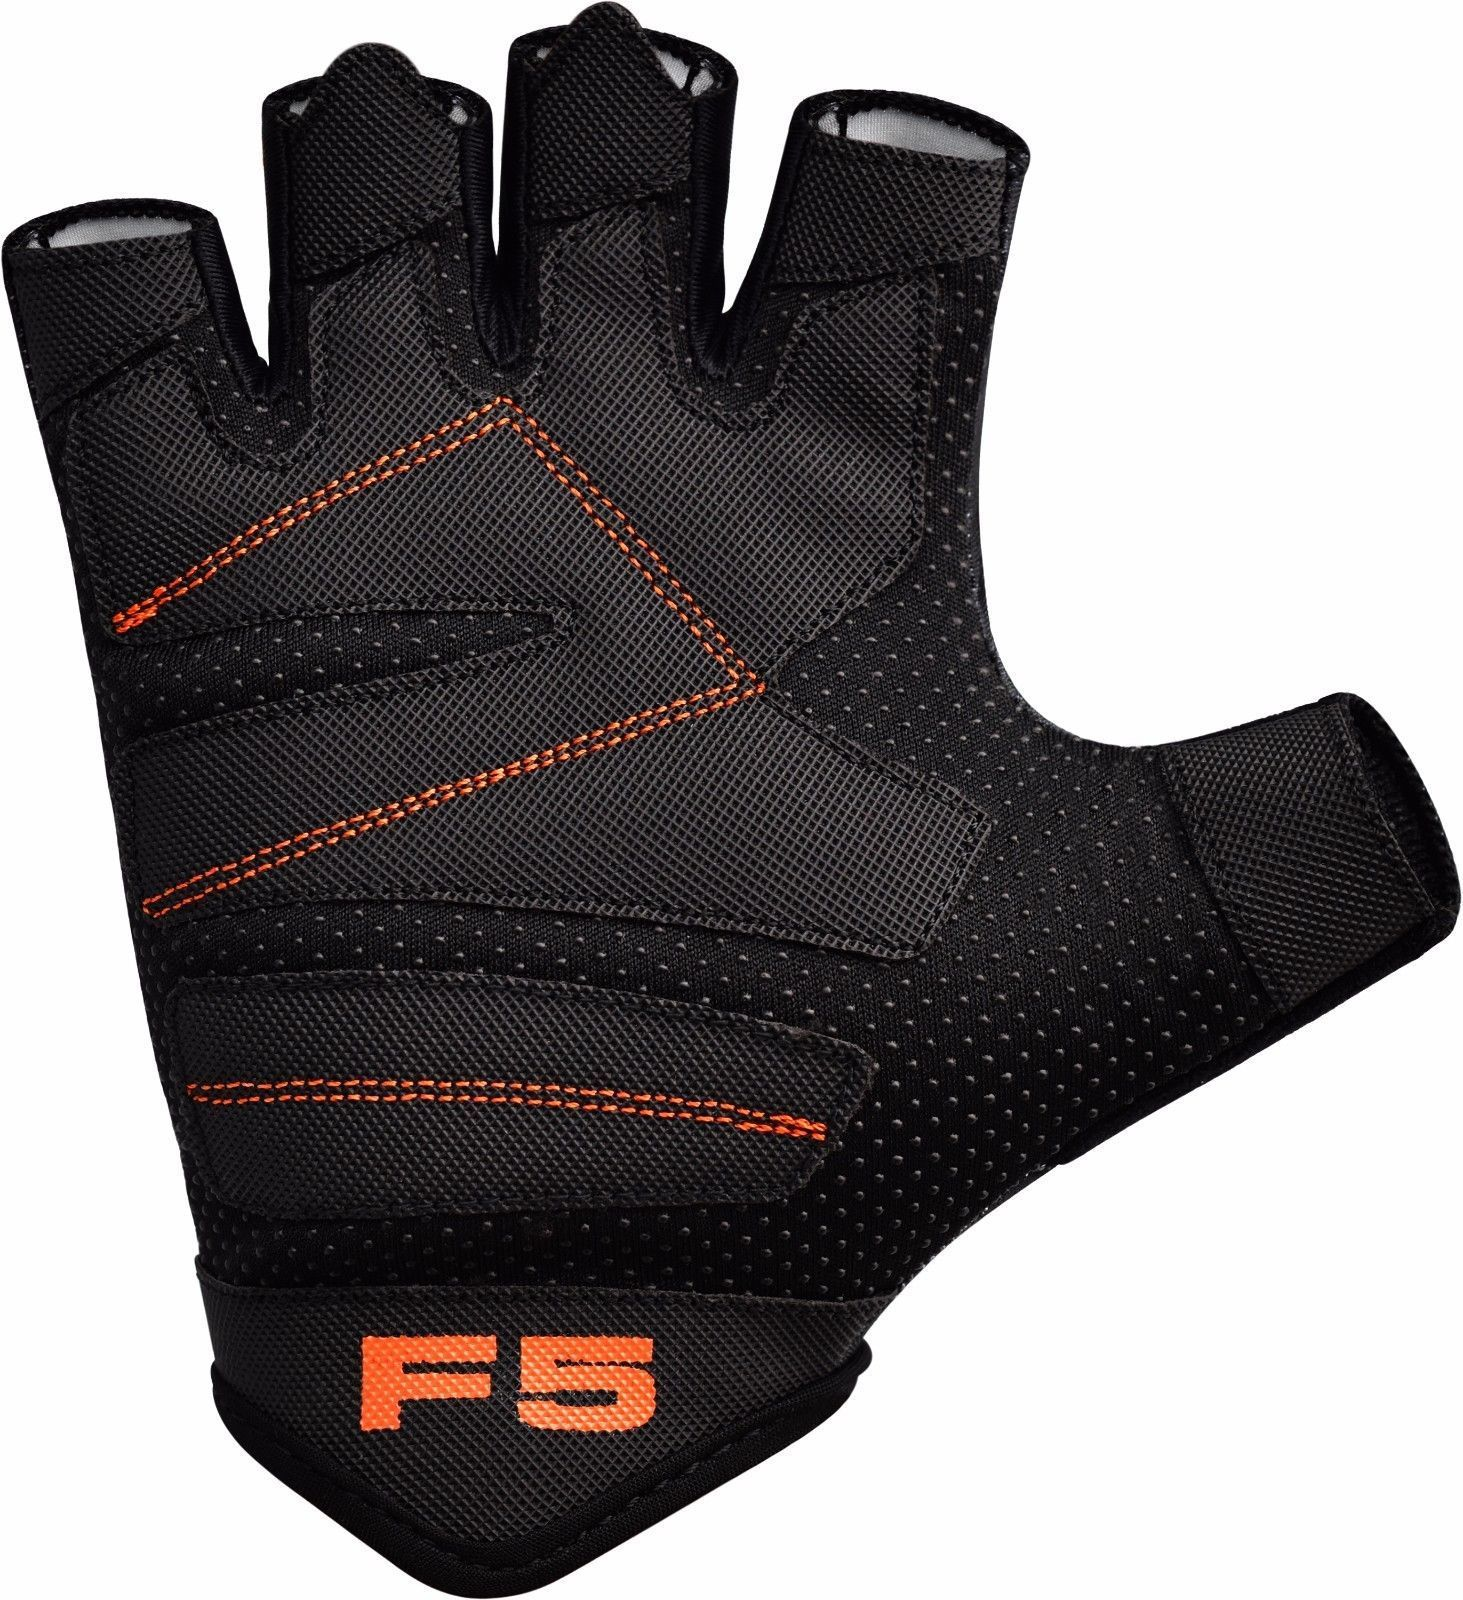 RDX WEIGHT LIFTING GYM GLOVES 8